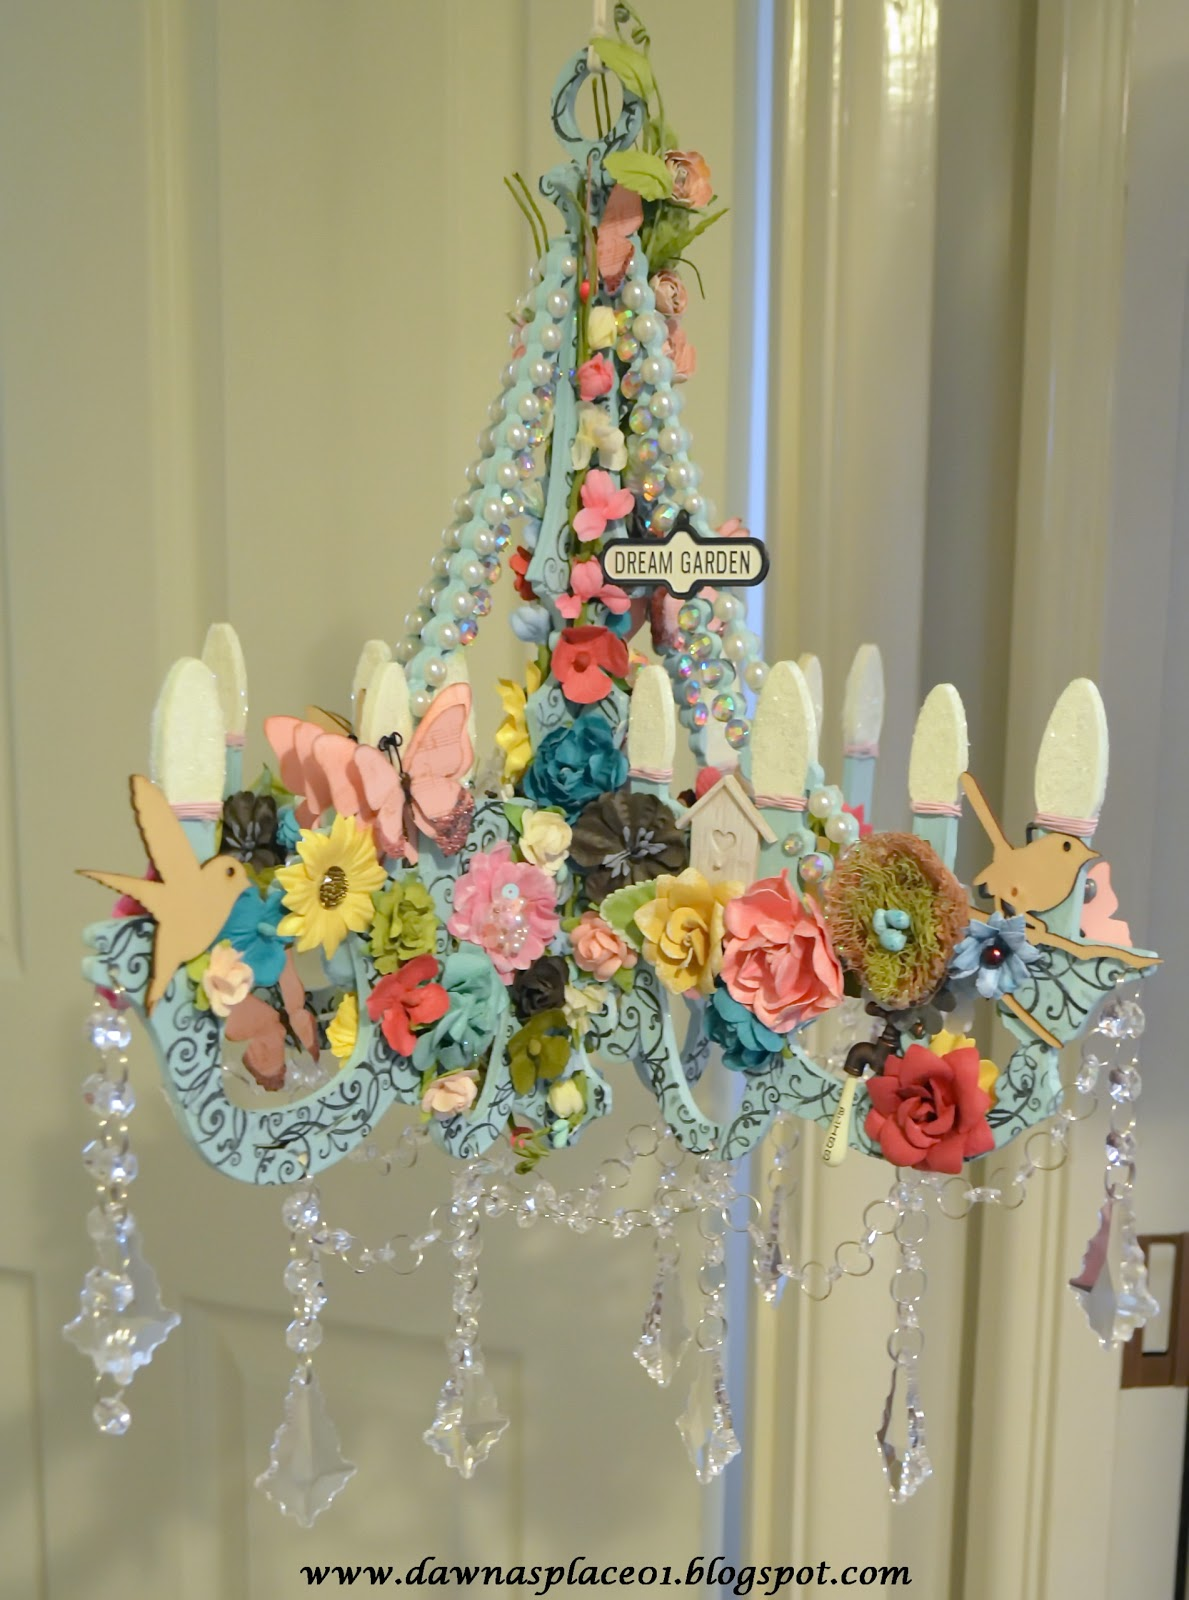 Dream Garden Chandelier